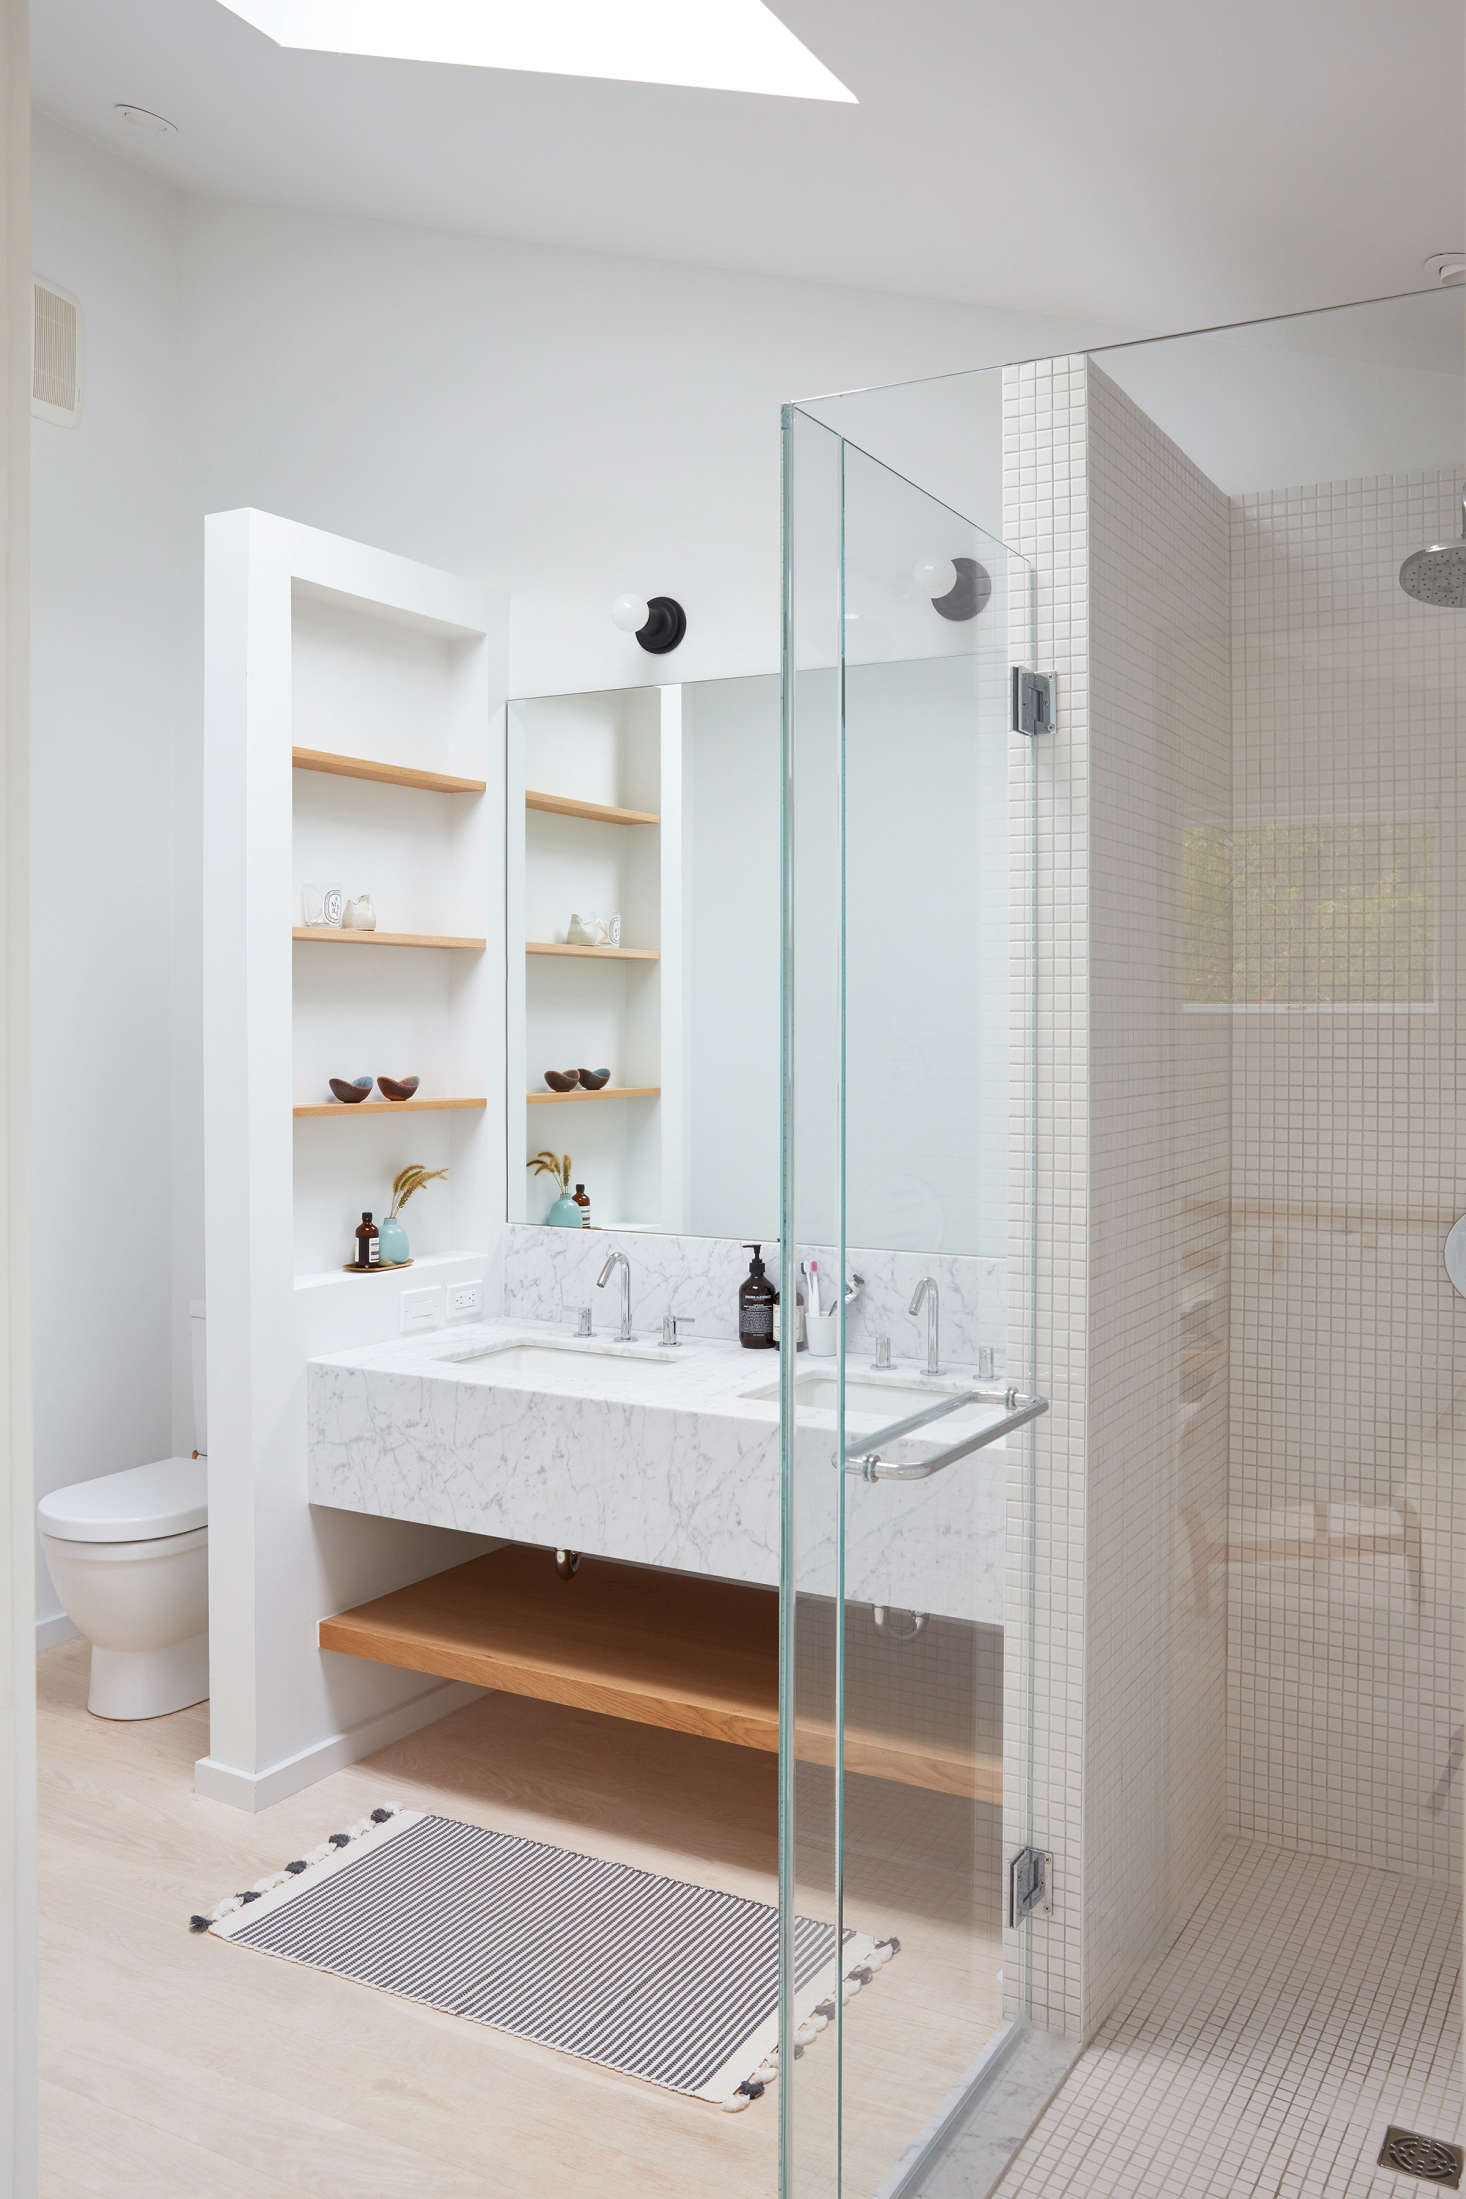 In the master bedroom, a custom marble vanity (also with marble from ABC Stone in Brooklyn) is fitted with custom oak shelves, perfect for storing bath essentials. A glass-enclosed shower uses square tiles from Nemo Tile. The toilet is the Duravit Happy D., and the striped rug is from Nickey Keyhoe in LA.